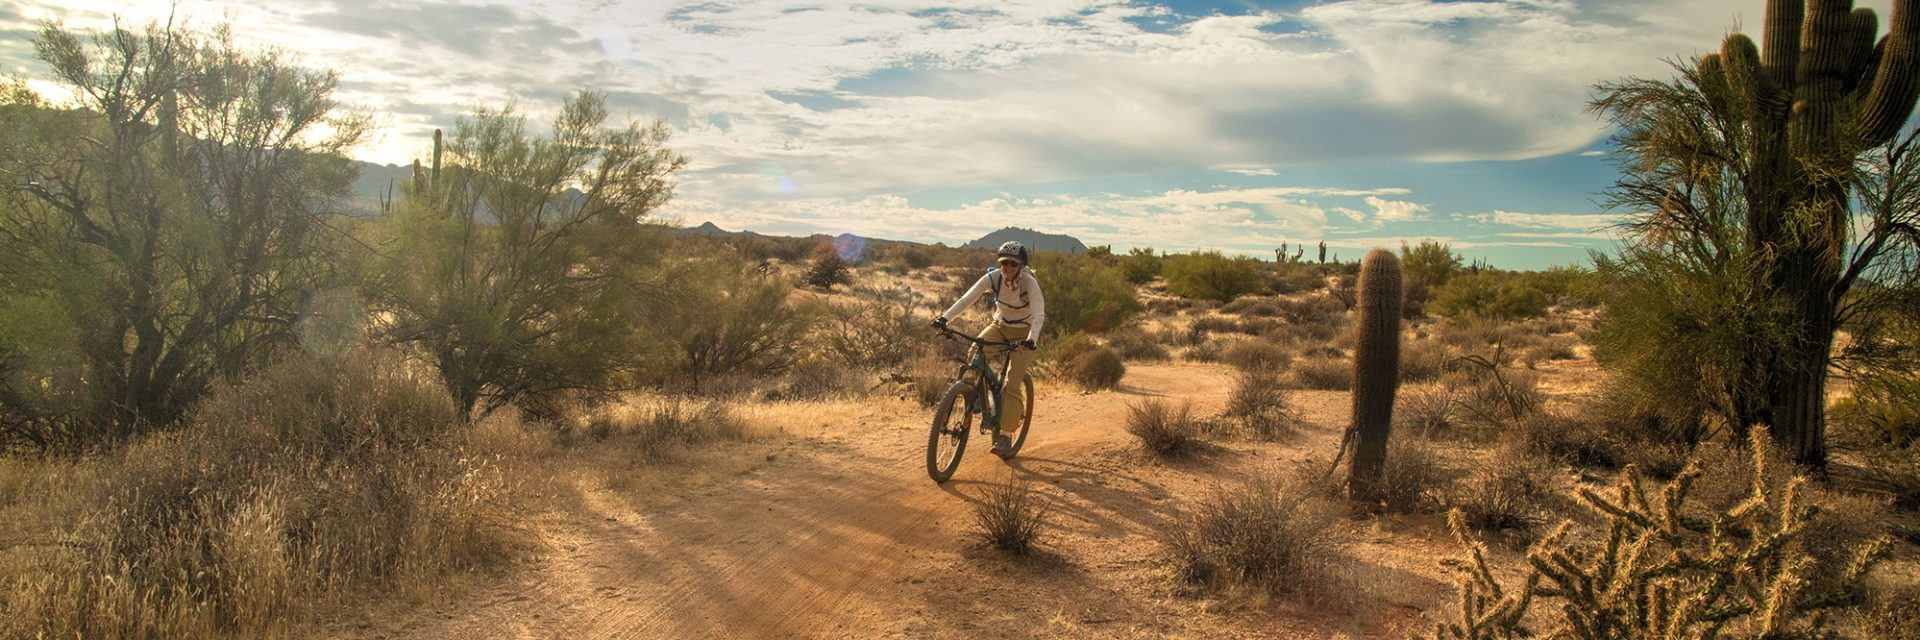 North Leg of Pemberton Trail, McDowell Mountain Park, Arizona's Sonoran Desert guided mtb tour near Phoenix, AZ